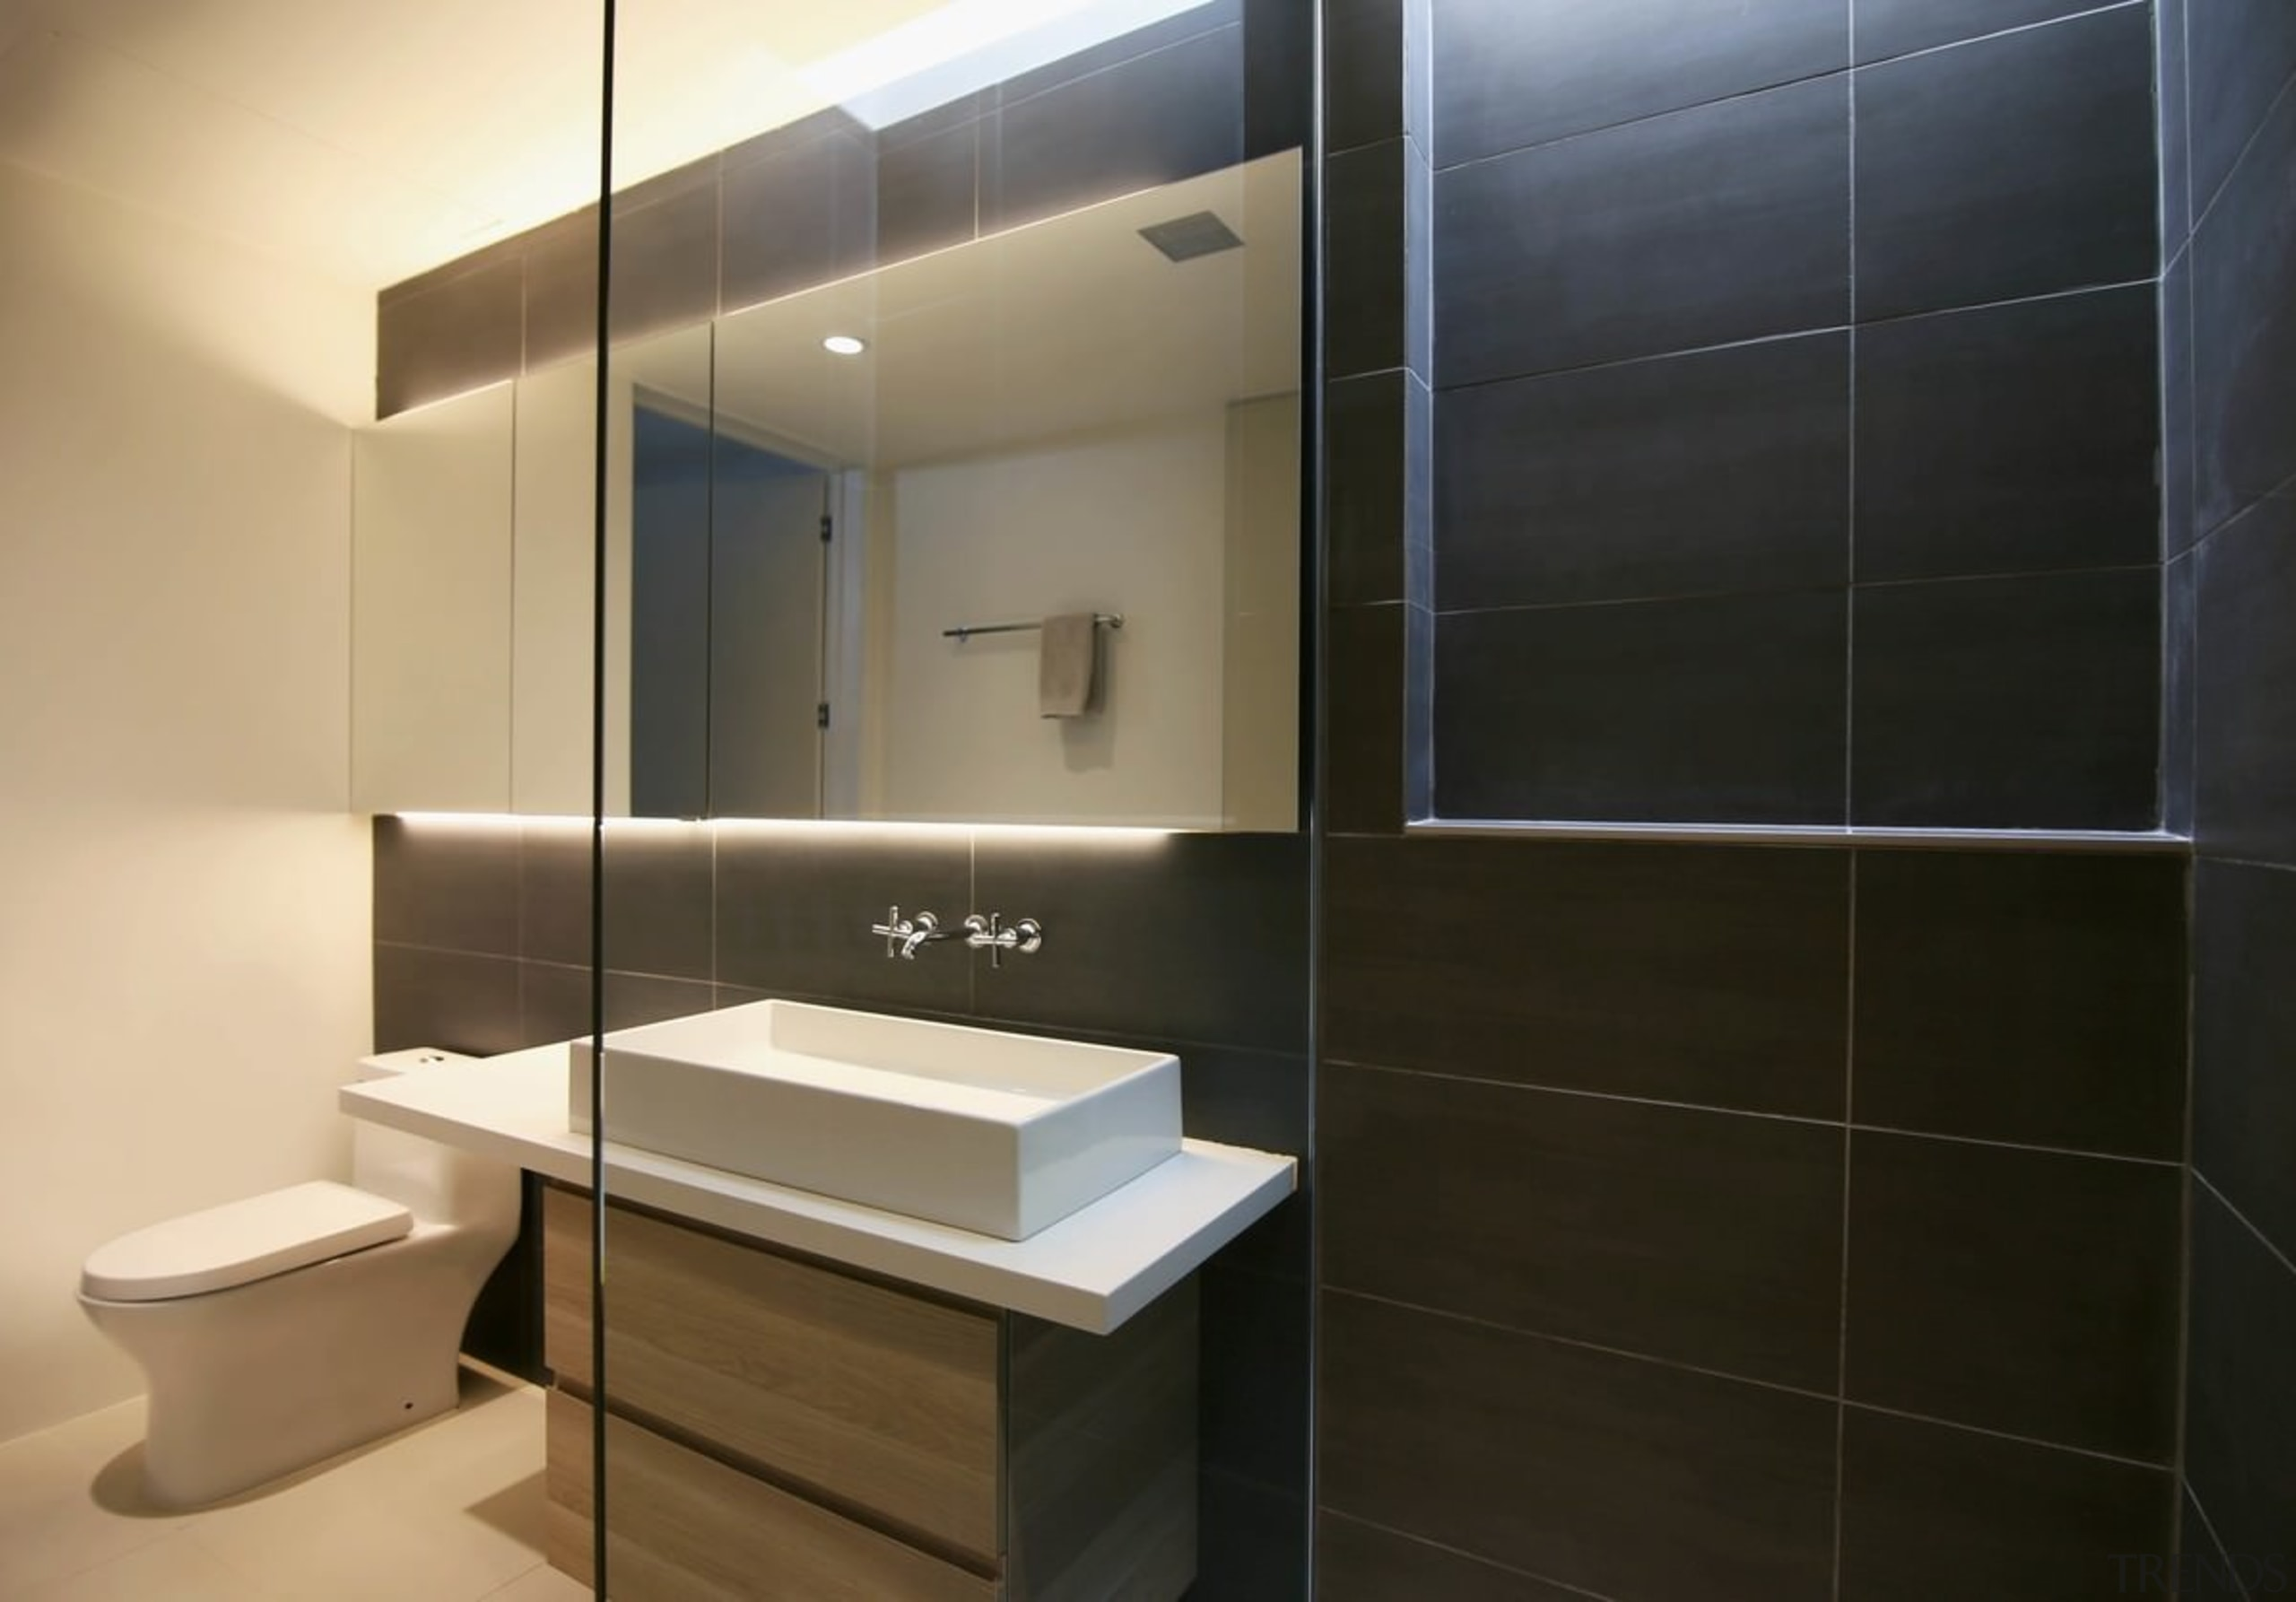 This bathroom features a wall of large back architecture, bathroom, bathroom accessory, floor, glass, interior design, product design, room, sink, tile, black